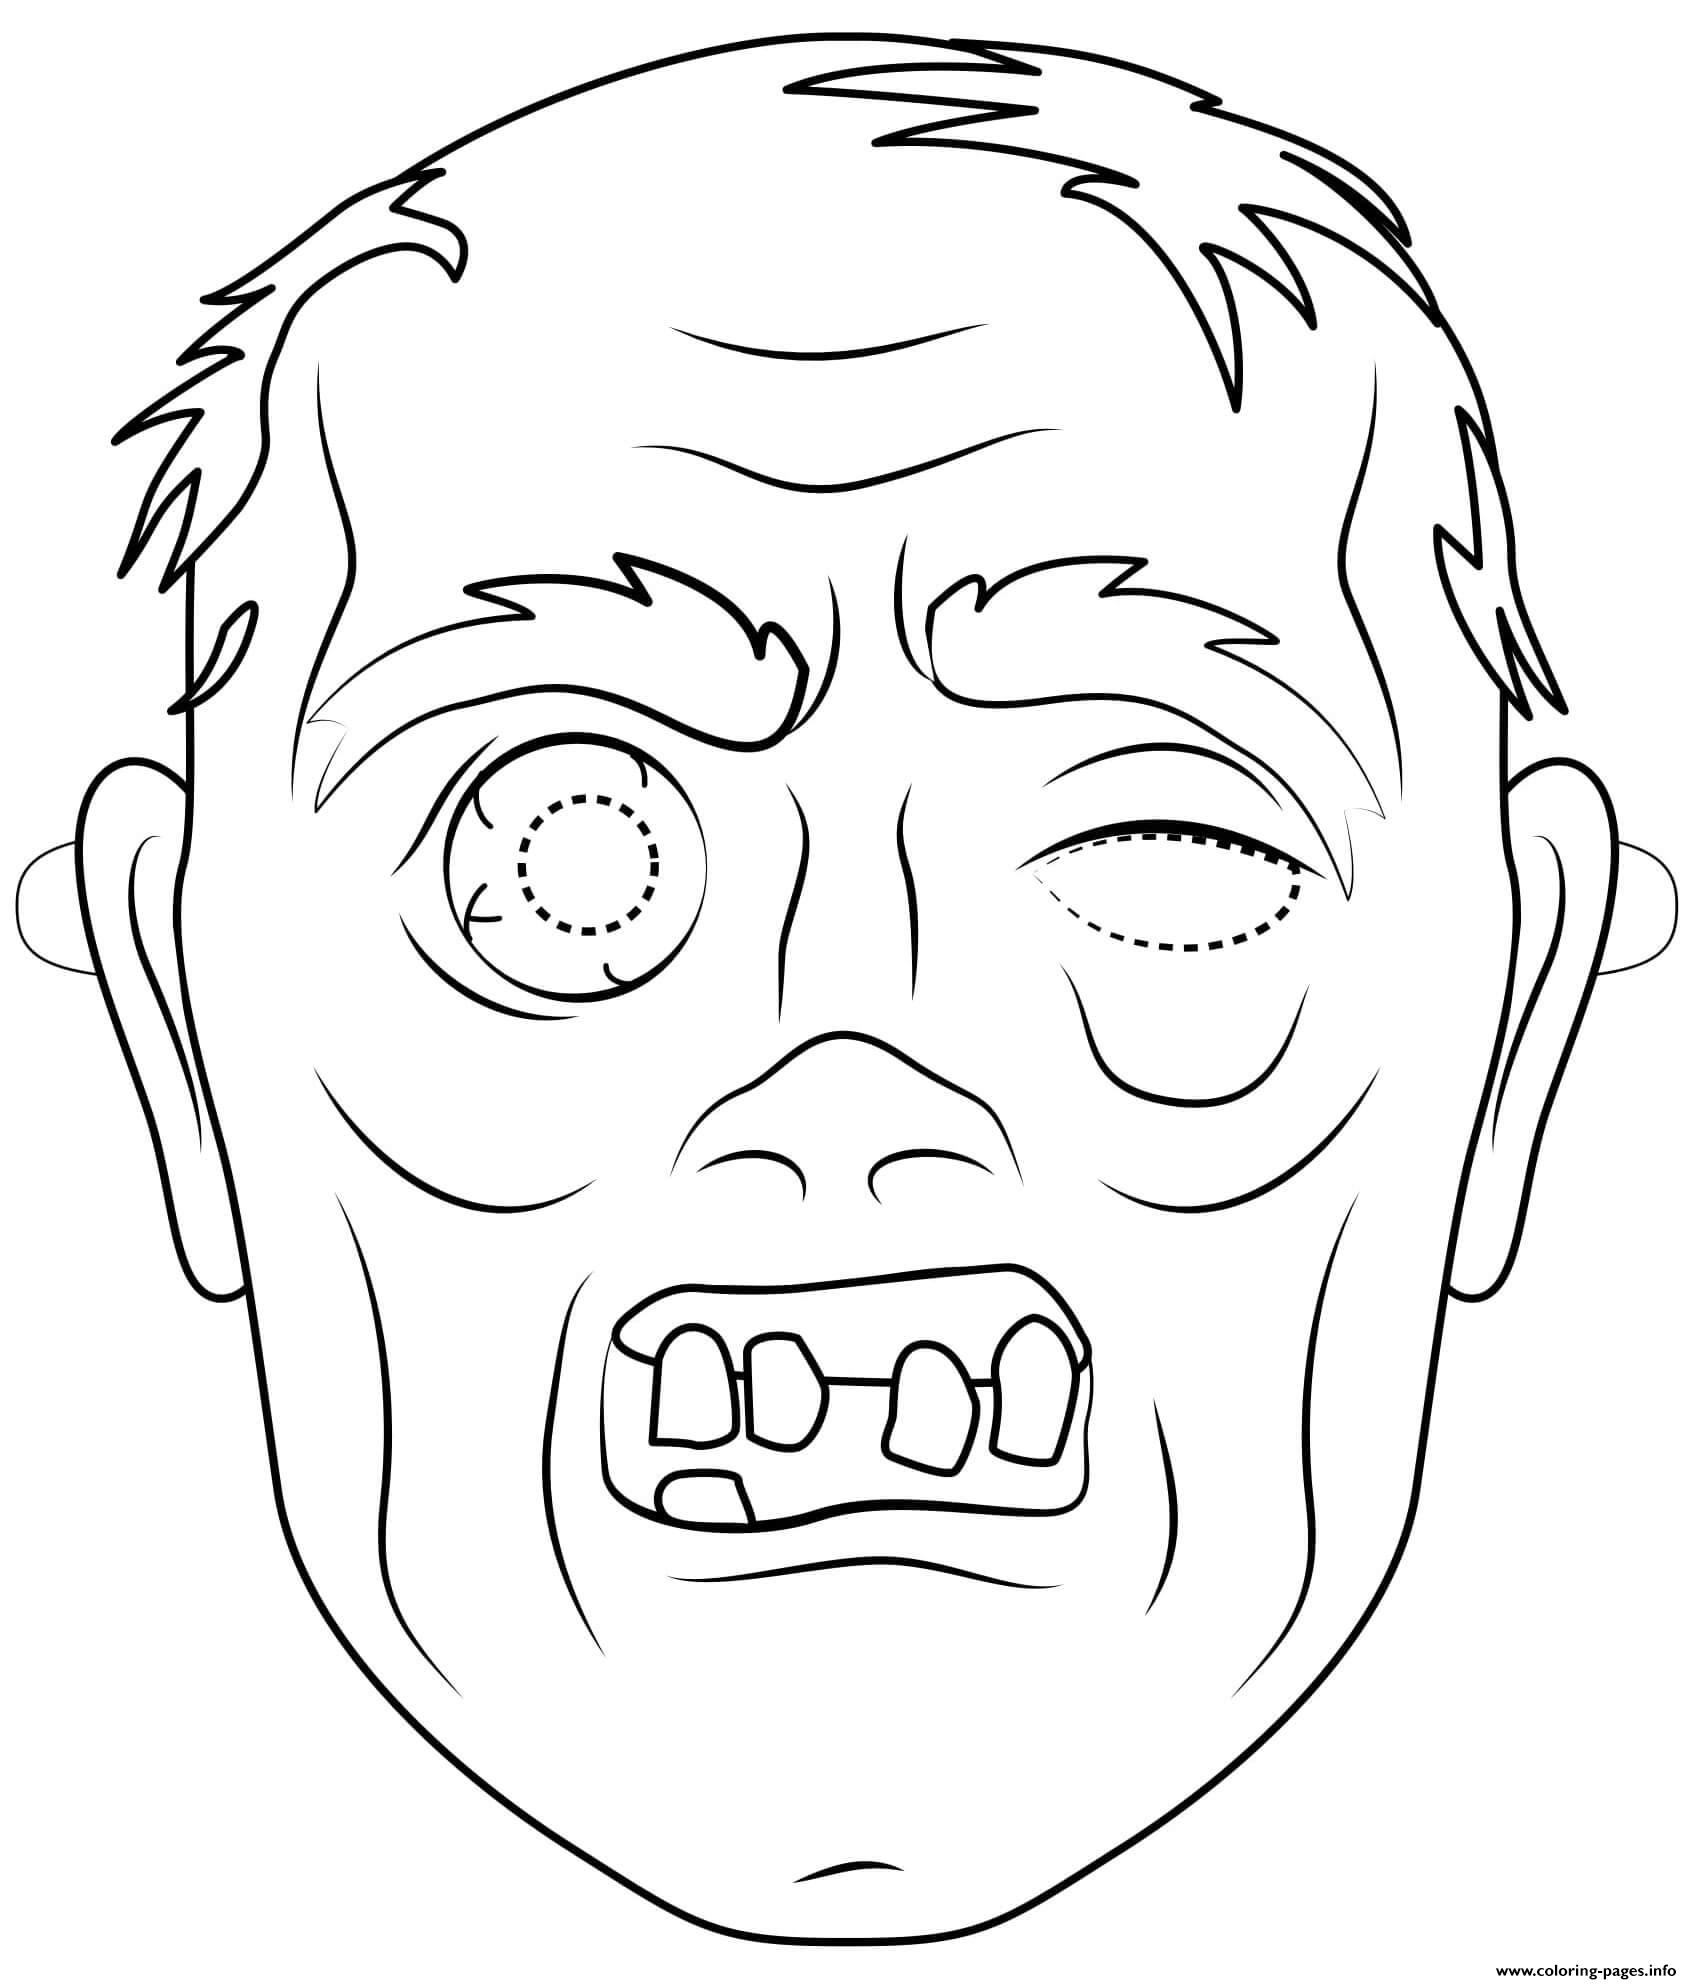 Zombie Mask Outline Halloween Coloring Pages Printable